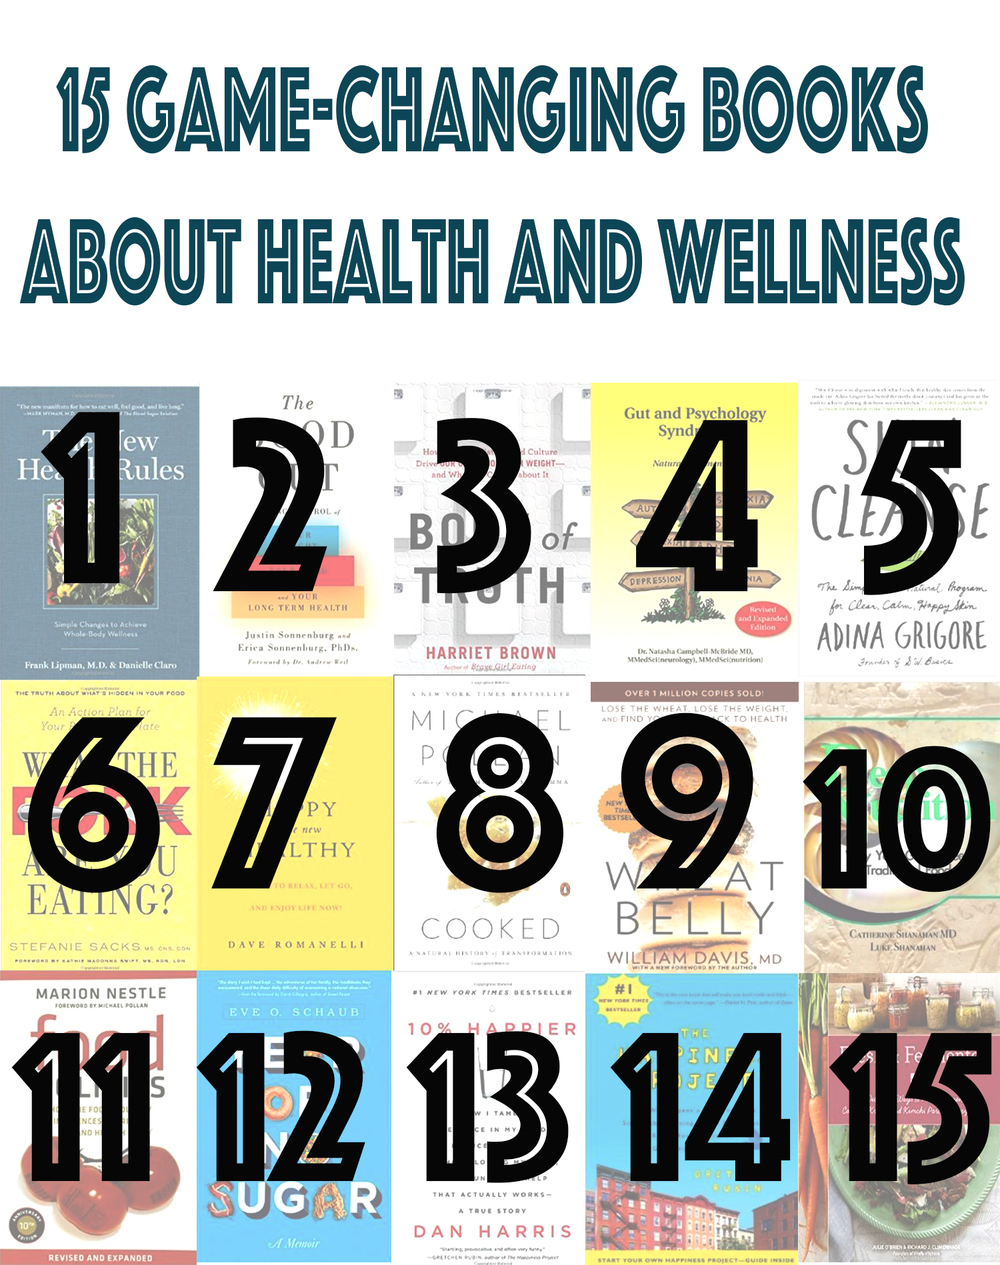 Pin now, read later! 15 game-changing books to help you on your path to health and wellness